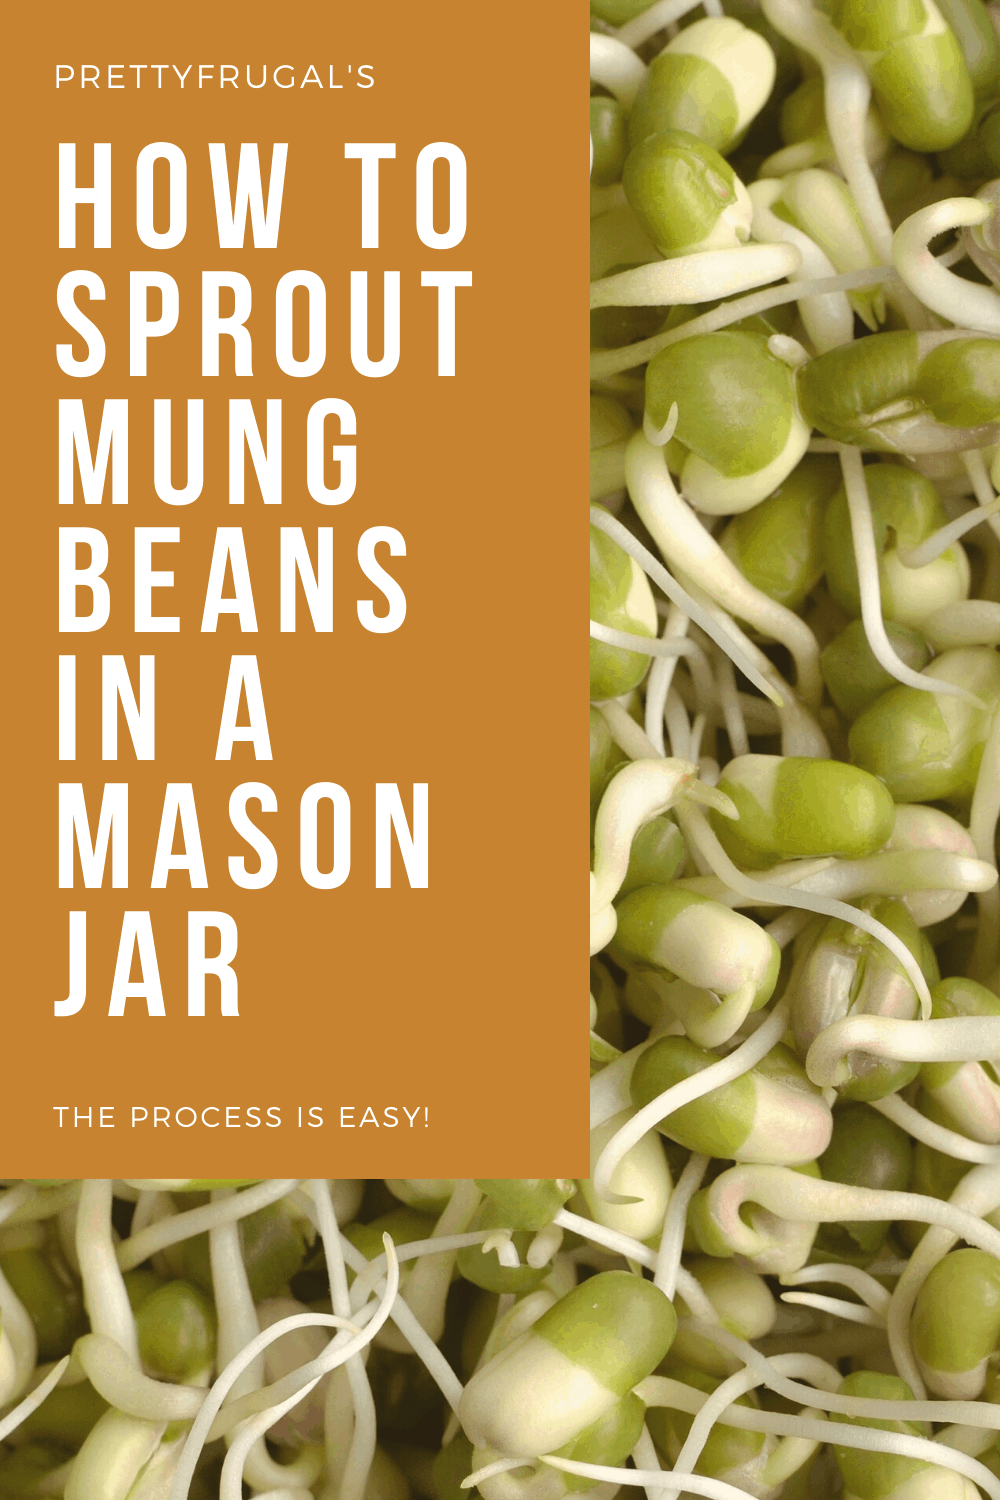 How to sprout mung beans in a mason jar